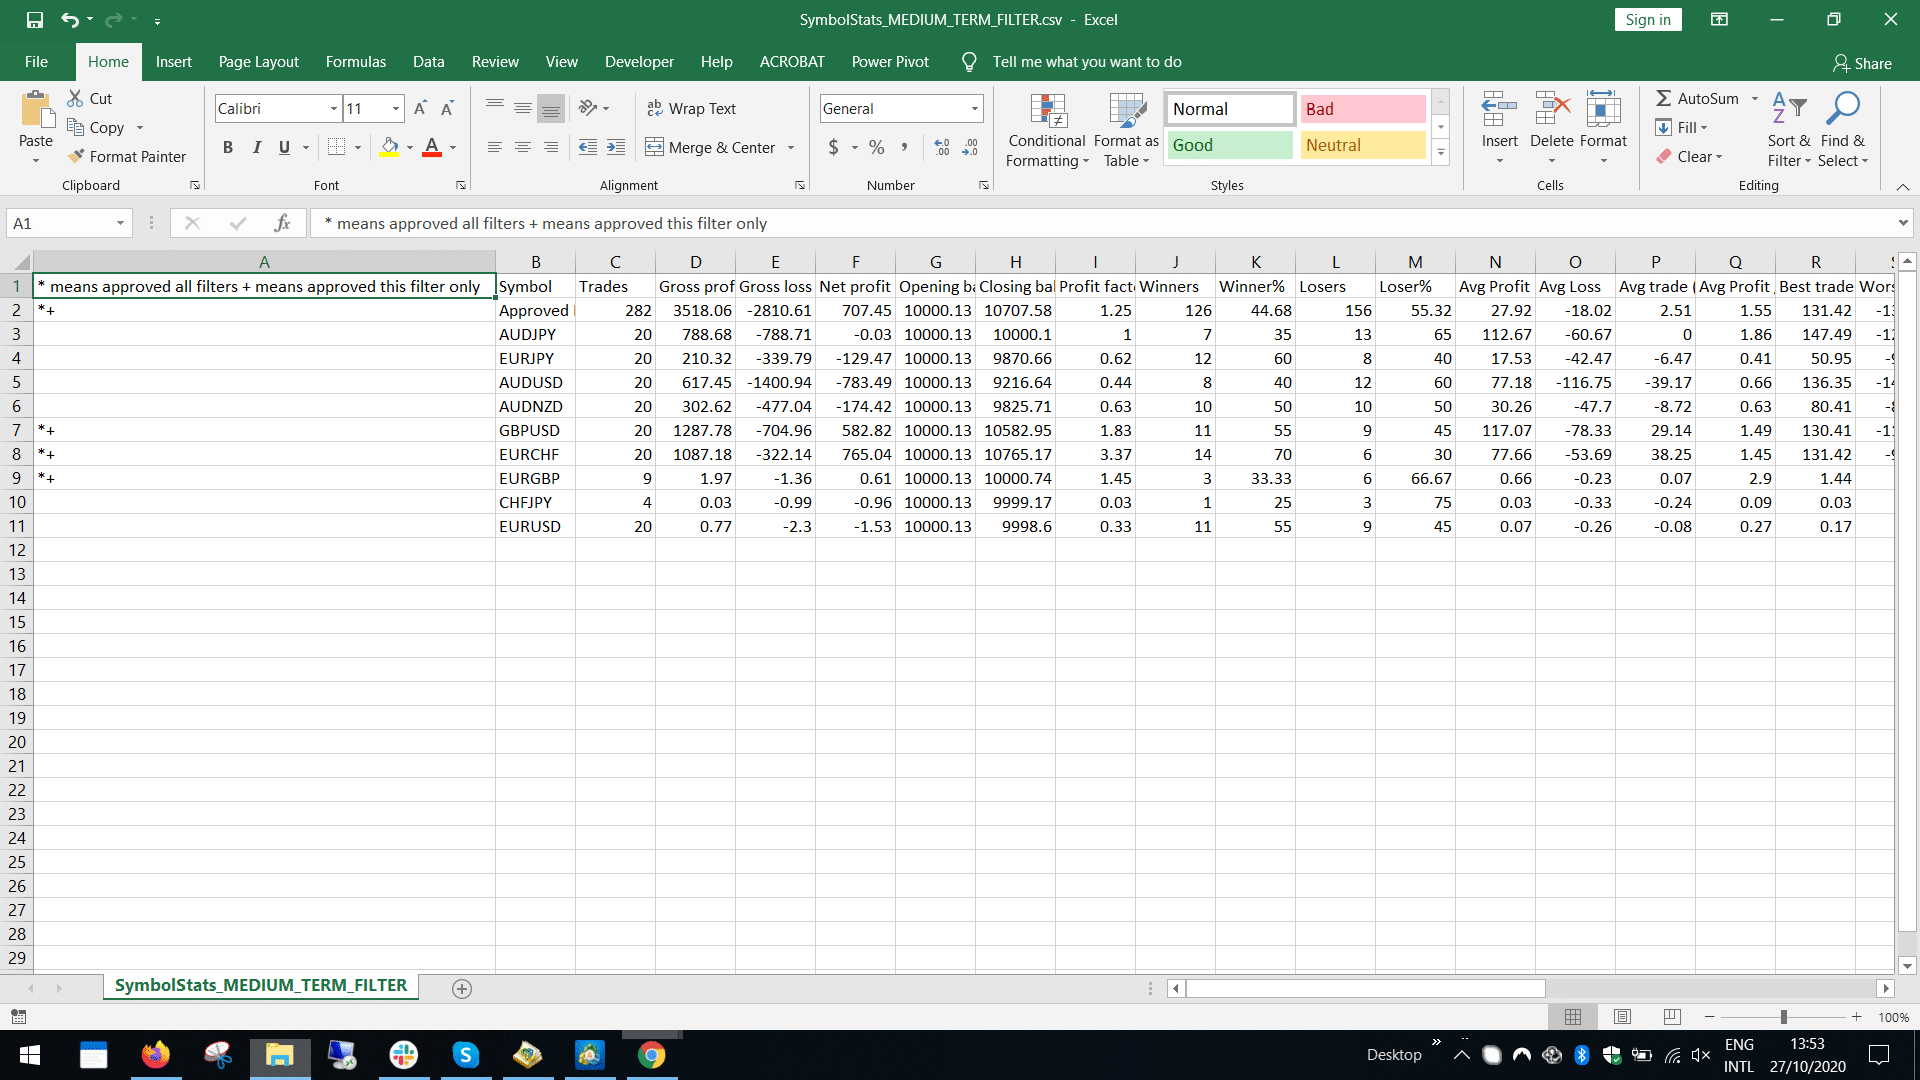 Strategy Samurai outputted medium term symbol filter file for analysis